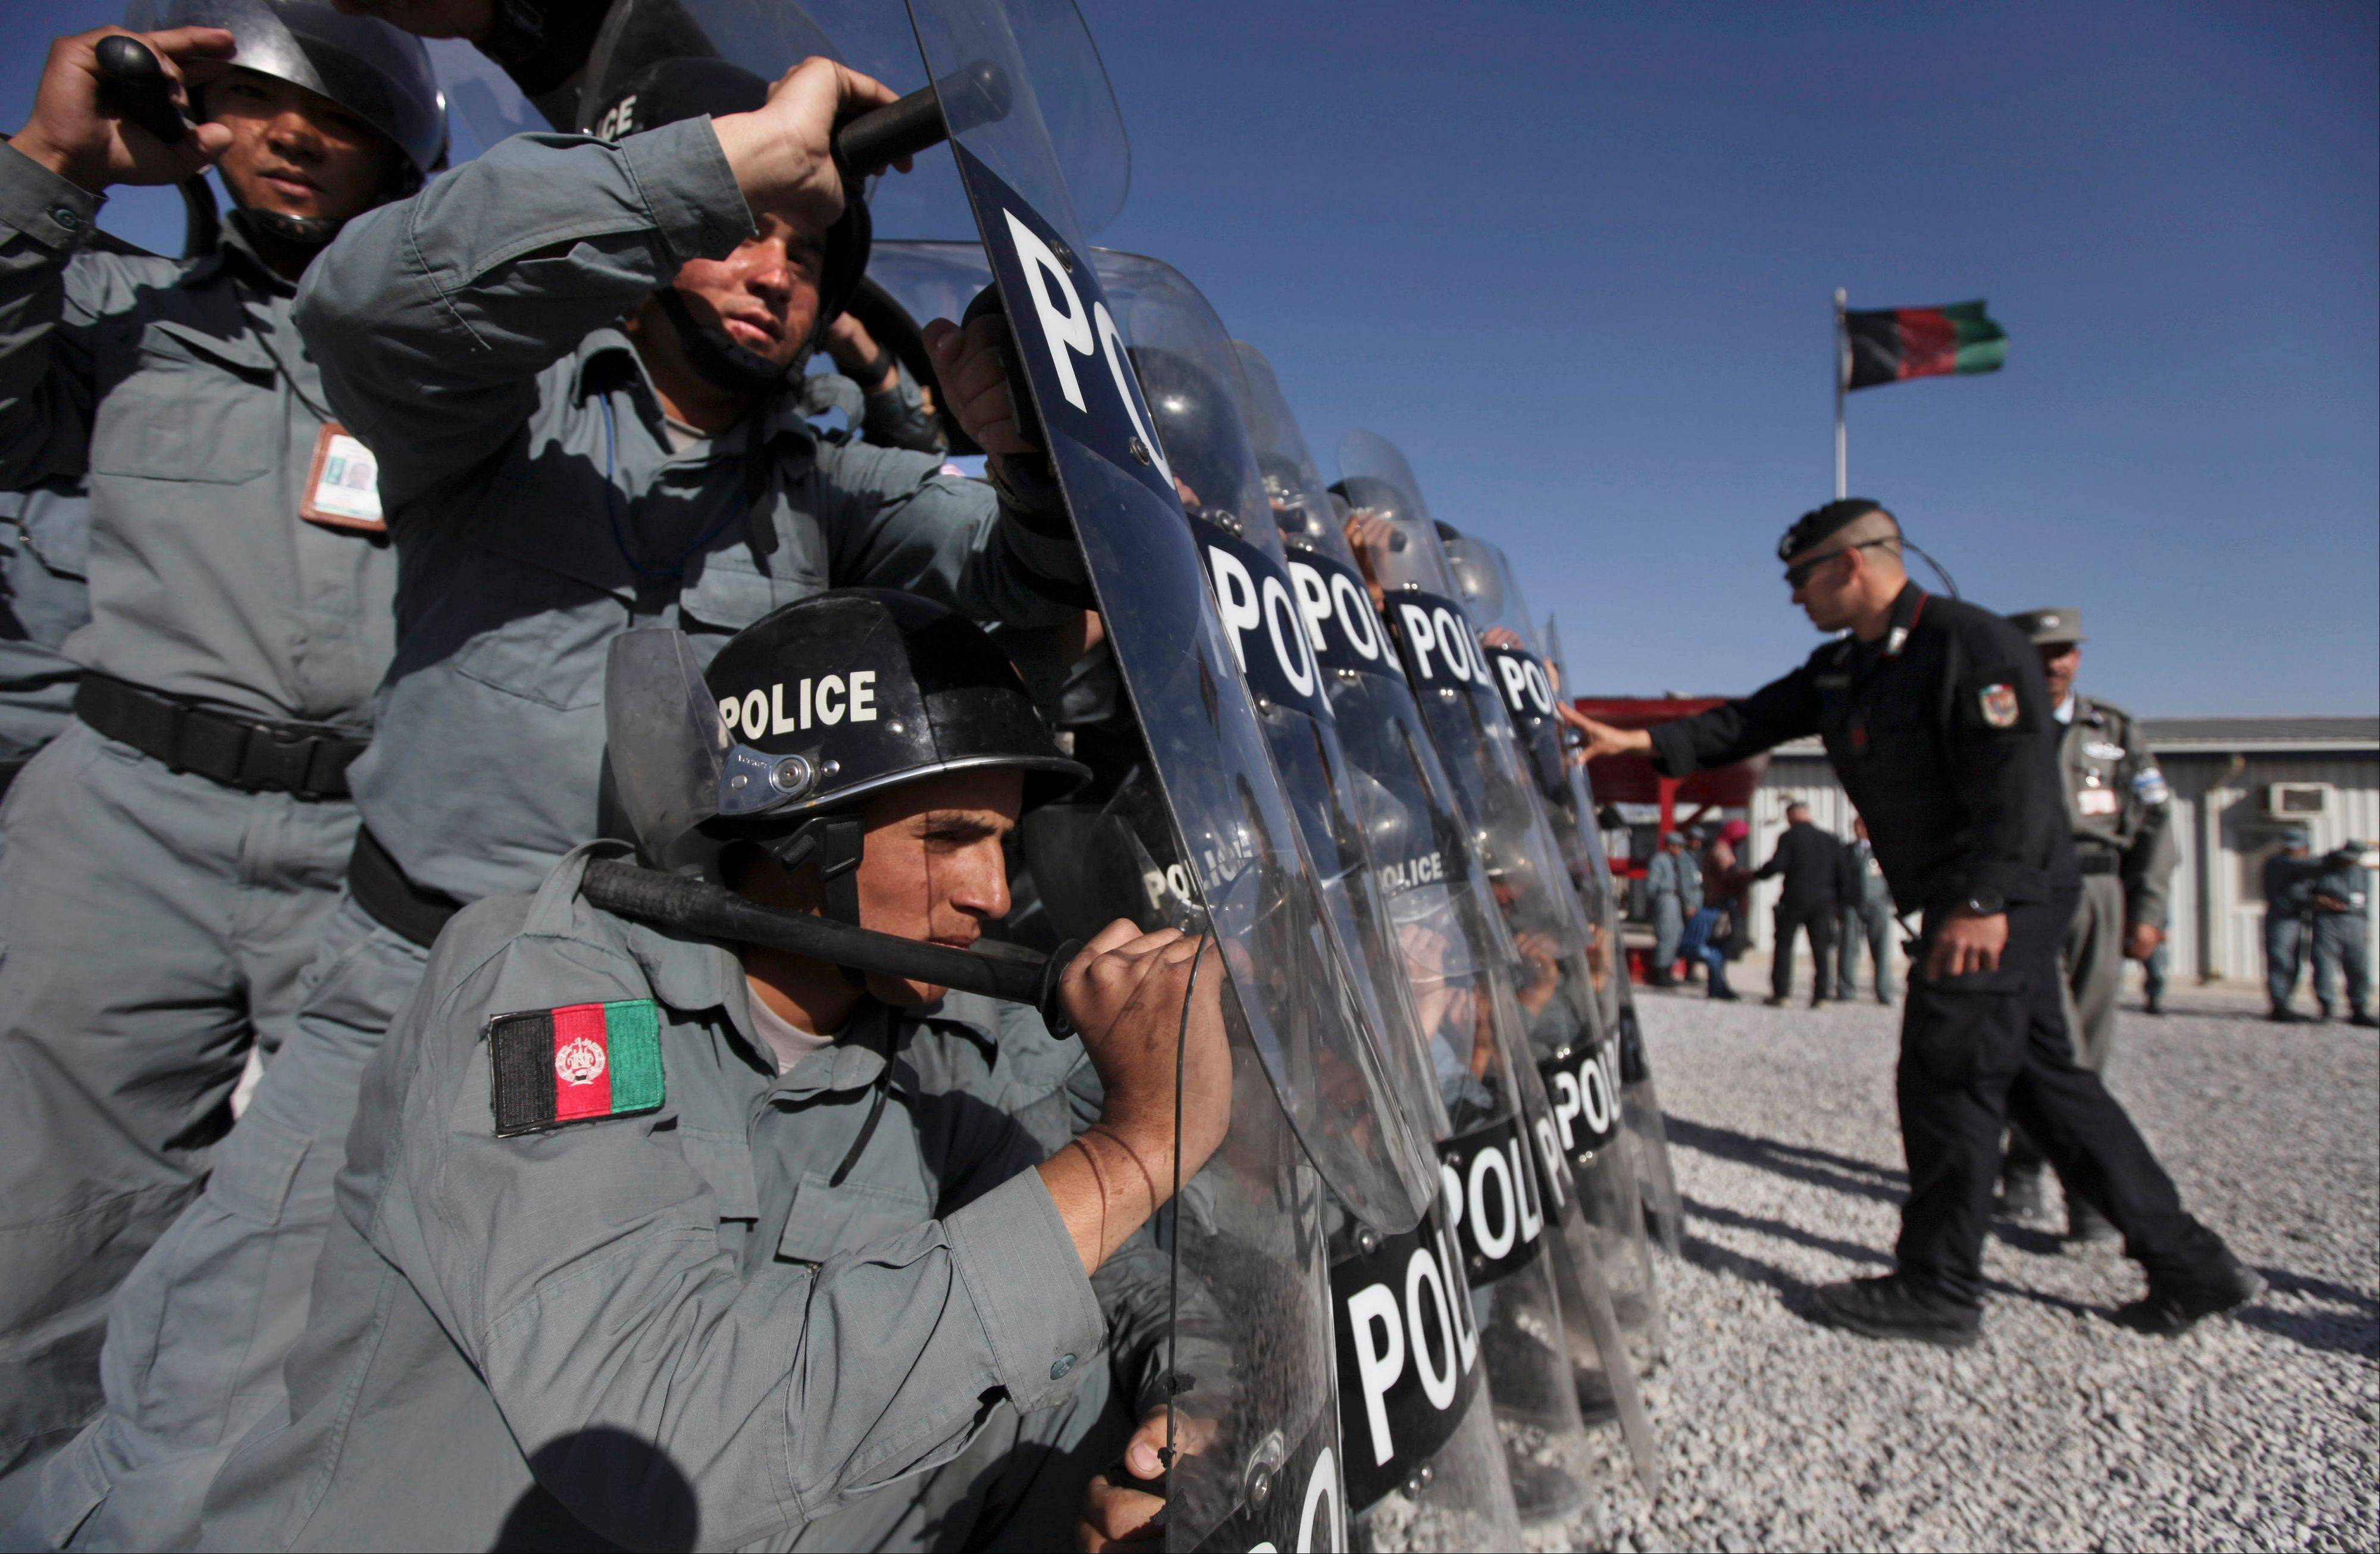 A member of Italy's carabinieri instructs new Afghan police recruits as they undergo riot control training on the outskirts of Kabul on Nov. 7, 2010. The U.S. military has suspended training for at least a month of some Afghan forces while the Americans review the process of vetting new recruits.